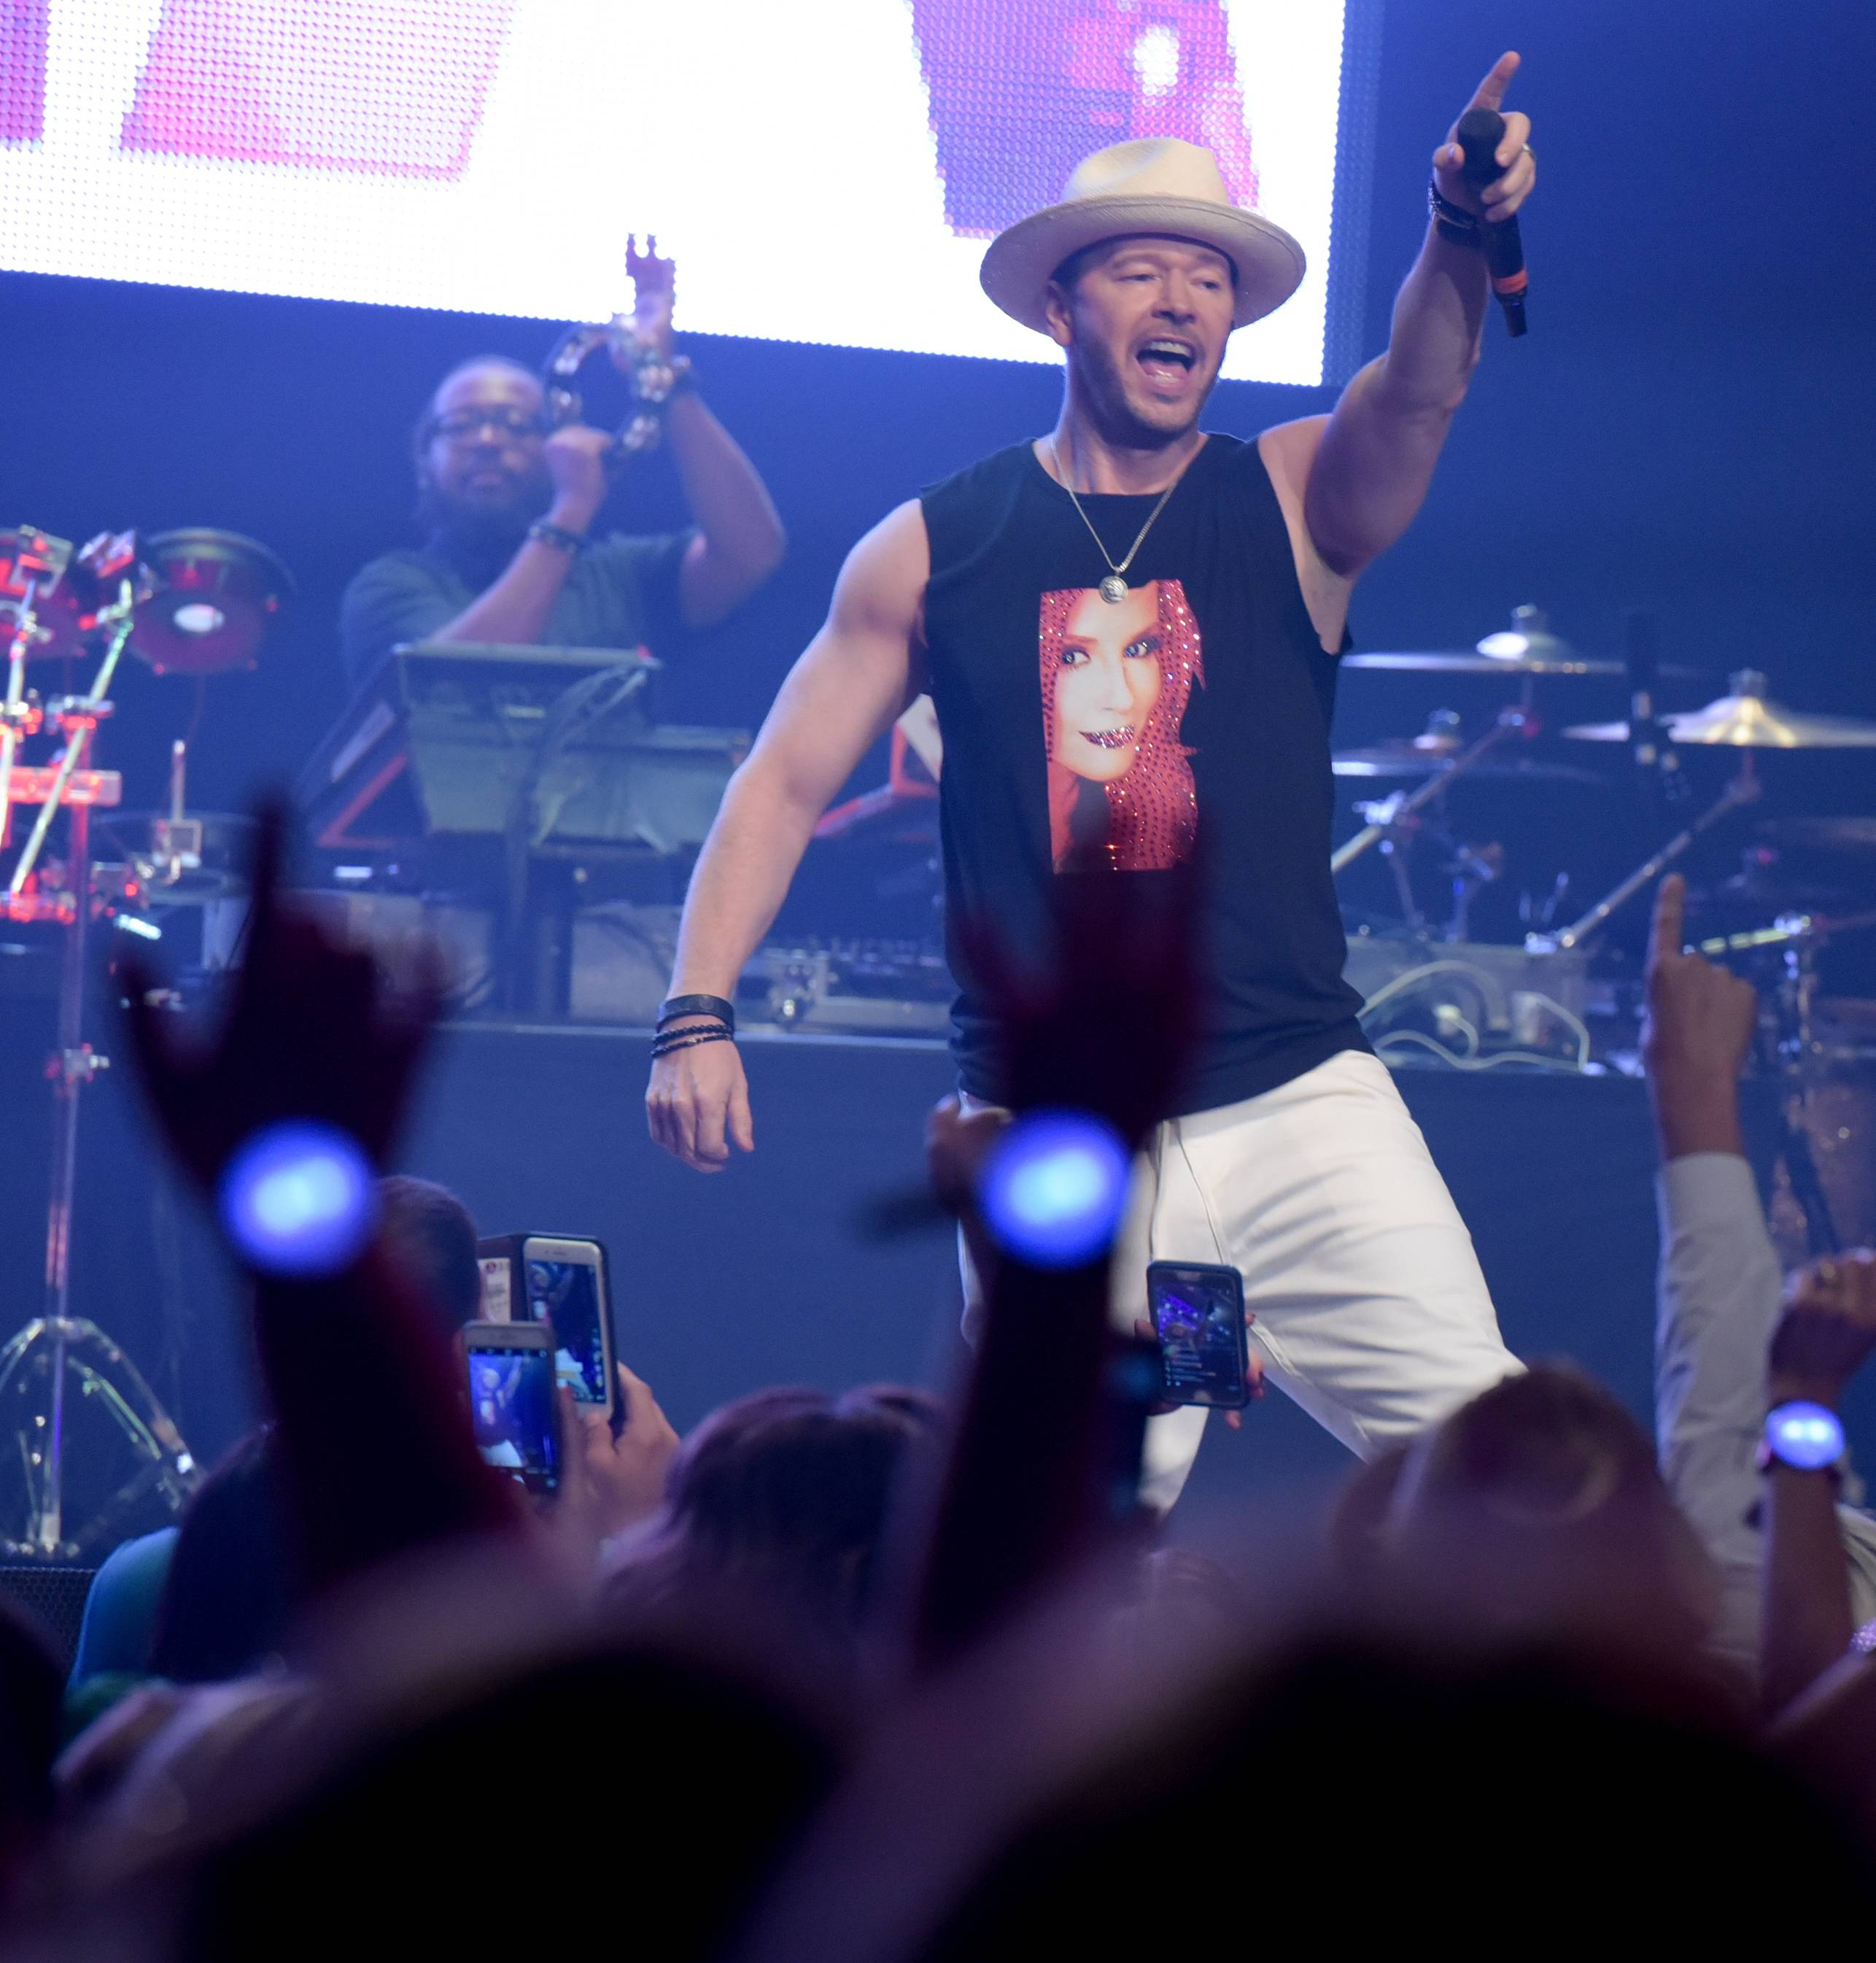 Donnie Wahlberg performs a concert Monday in St. Charles at the Arcada Theatre to raise money and awareness for Generation Rescue, a foundation that assists families affected by autism, like his wife Jenny McCarthy's son.